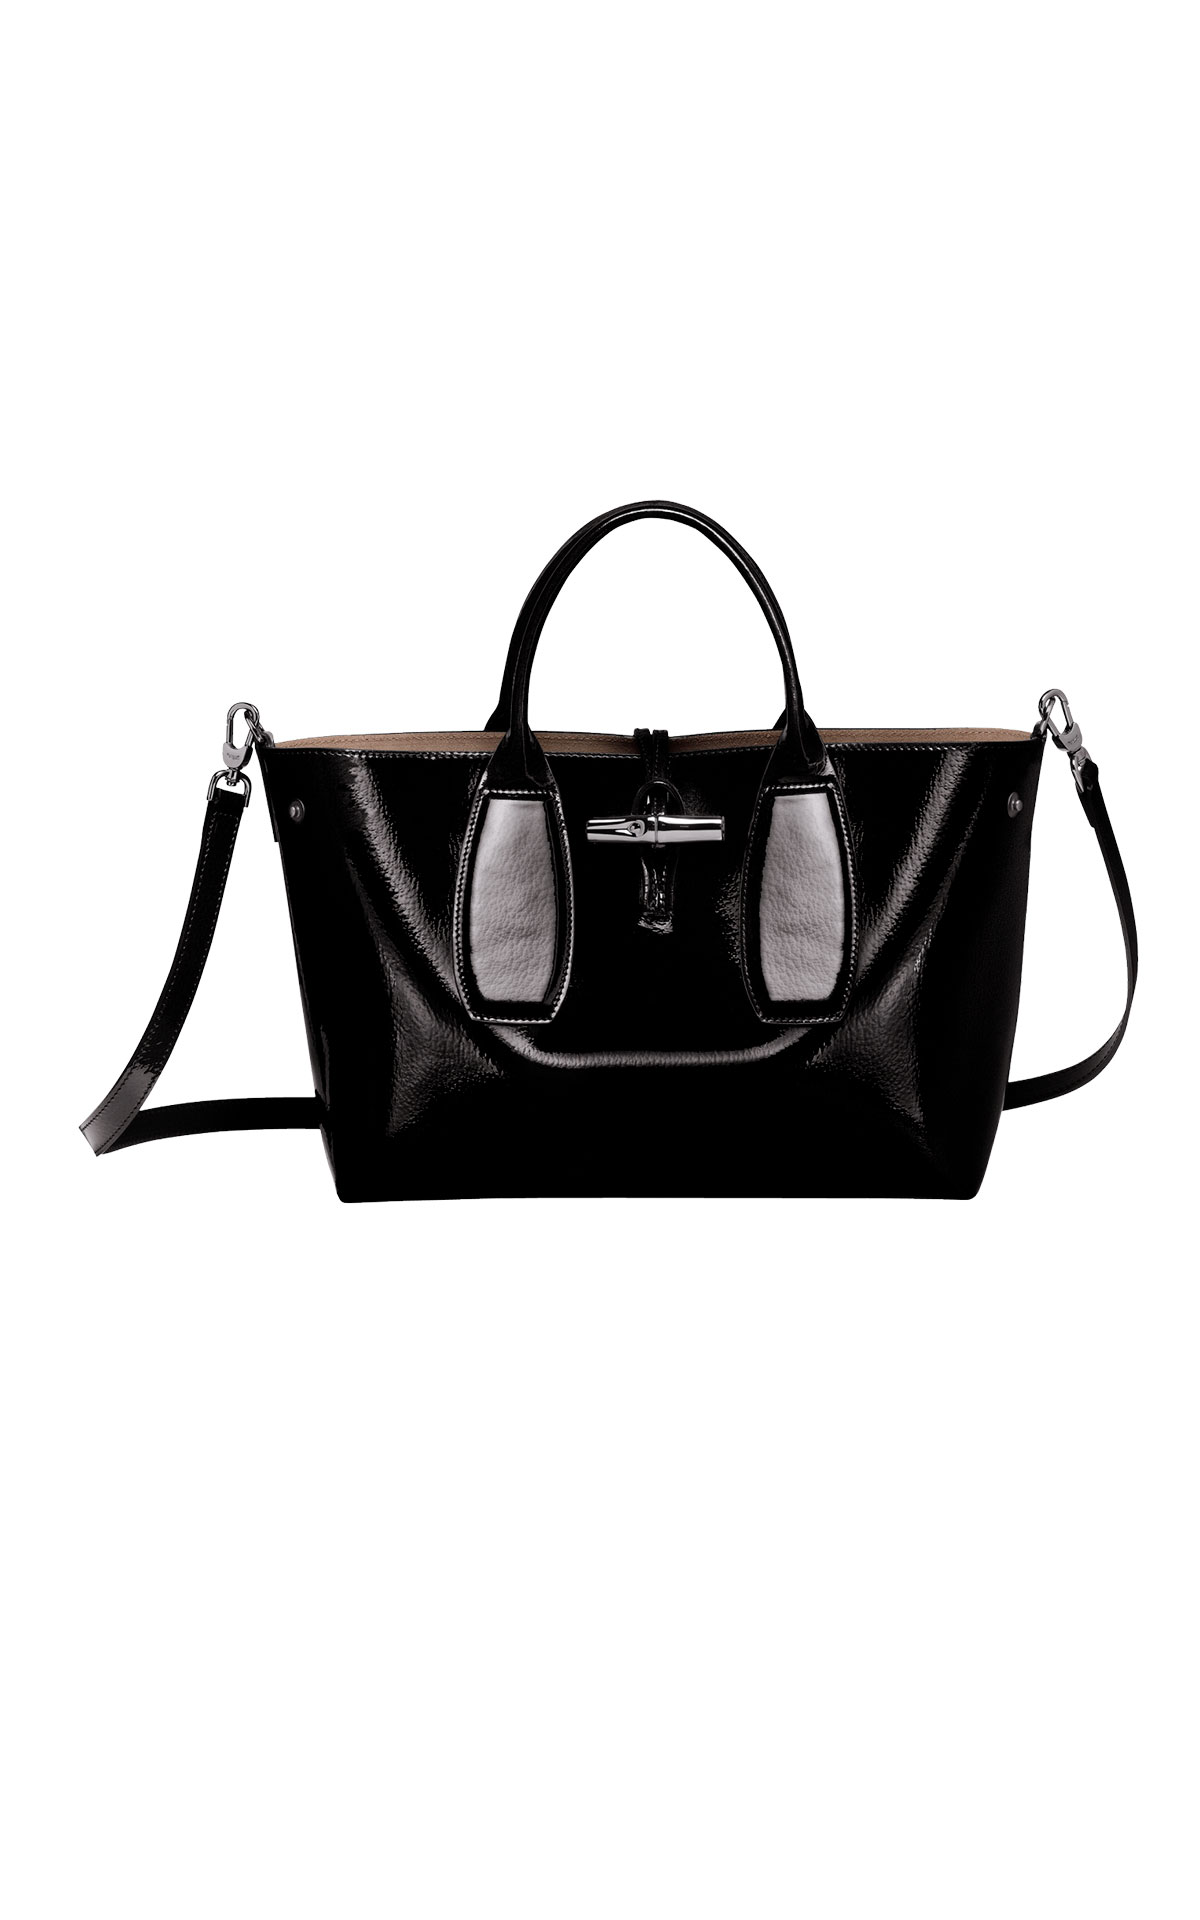 Roseau Vernis bag Longchamp